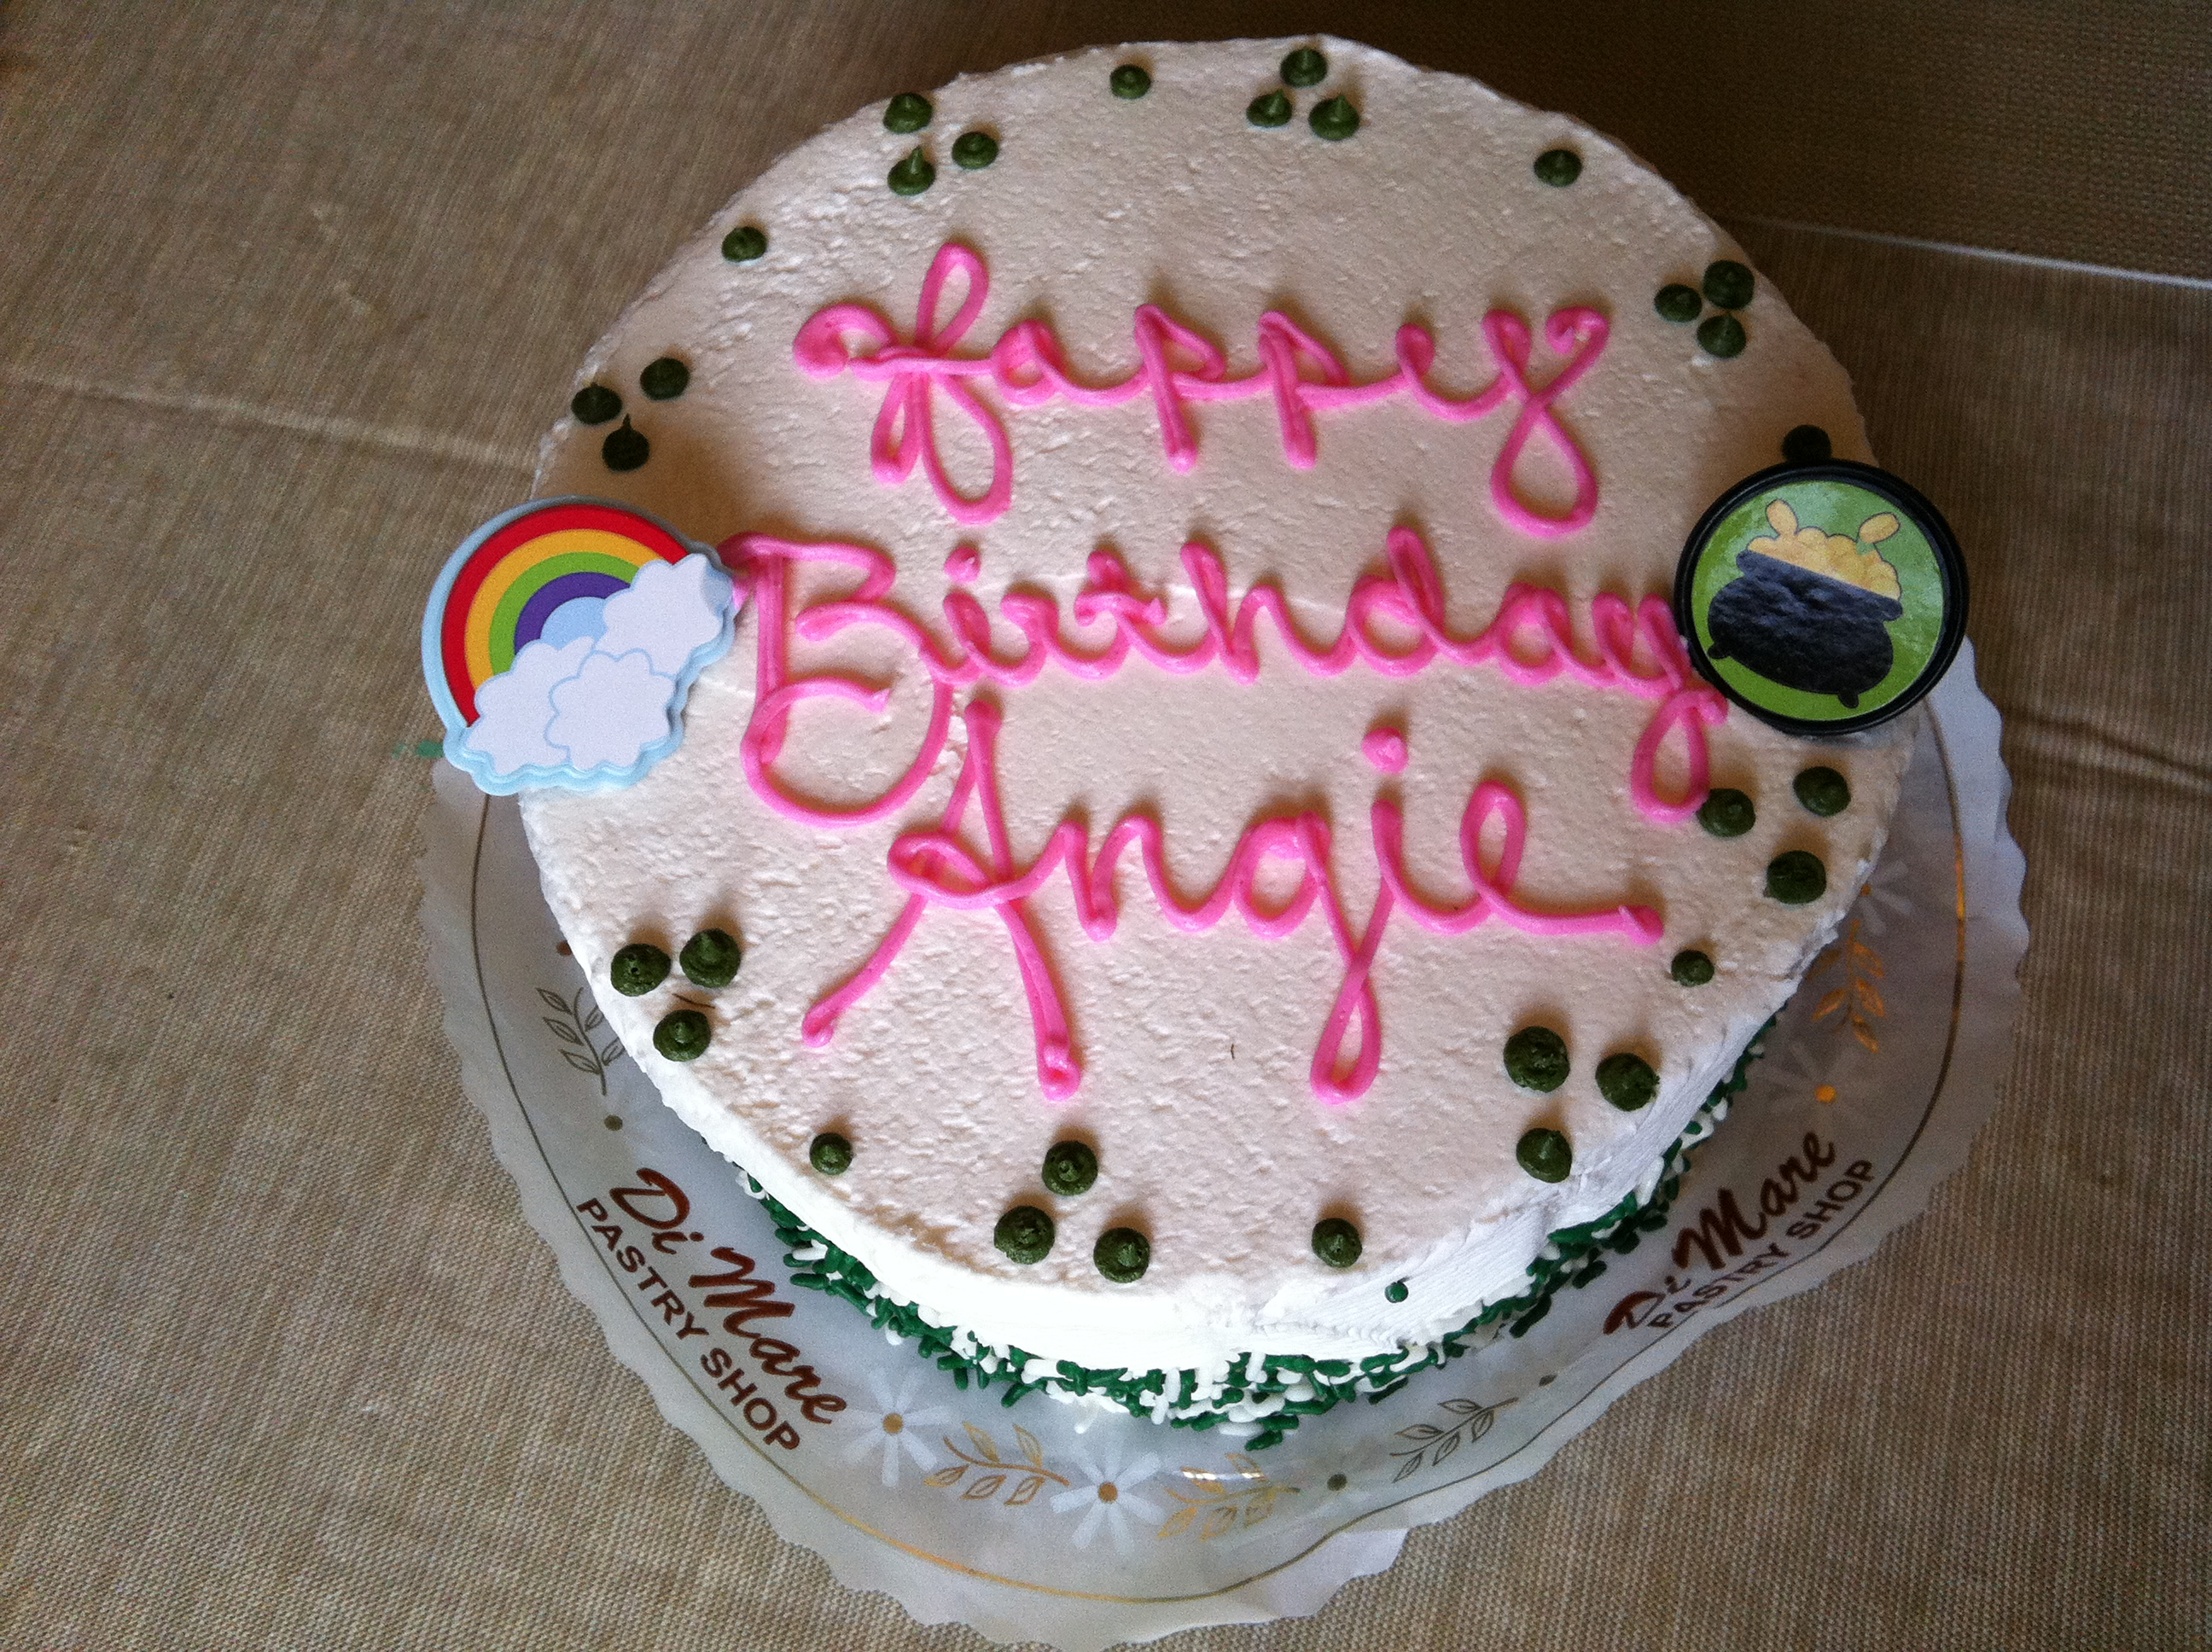 angie is short for angelina which means angel however i